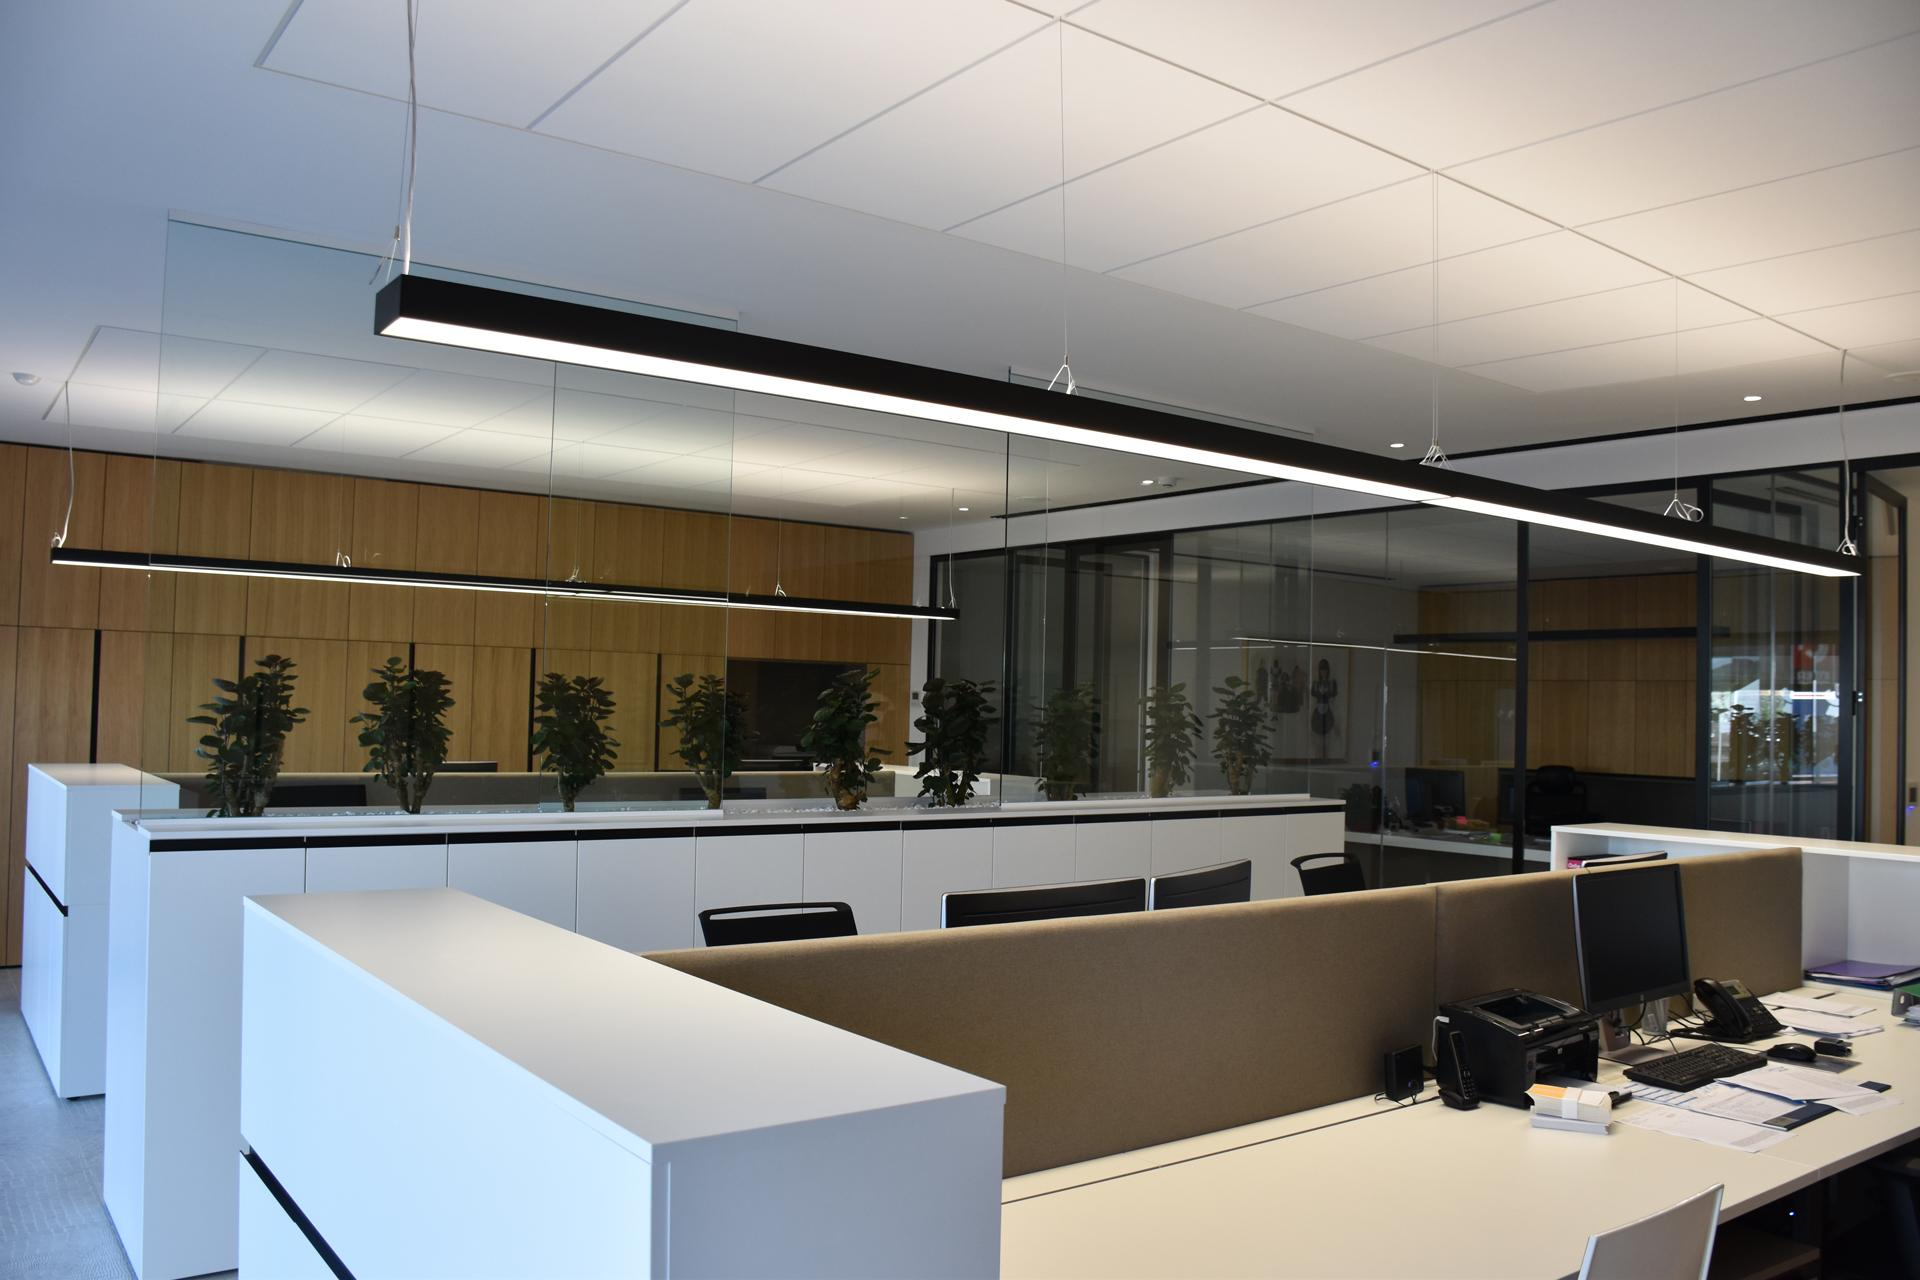 office lighting solutions. Visual Comfort With An Elegant Lighting Solution In A New Office Building Solutions O